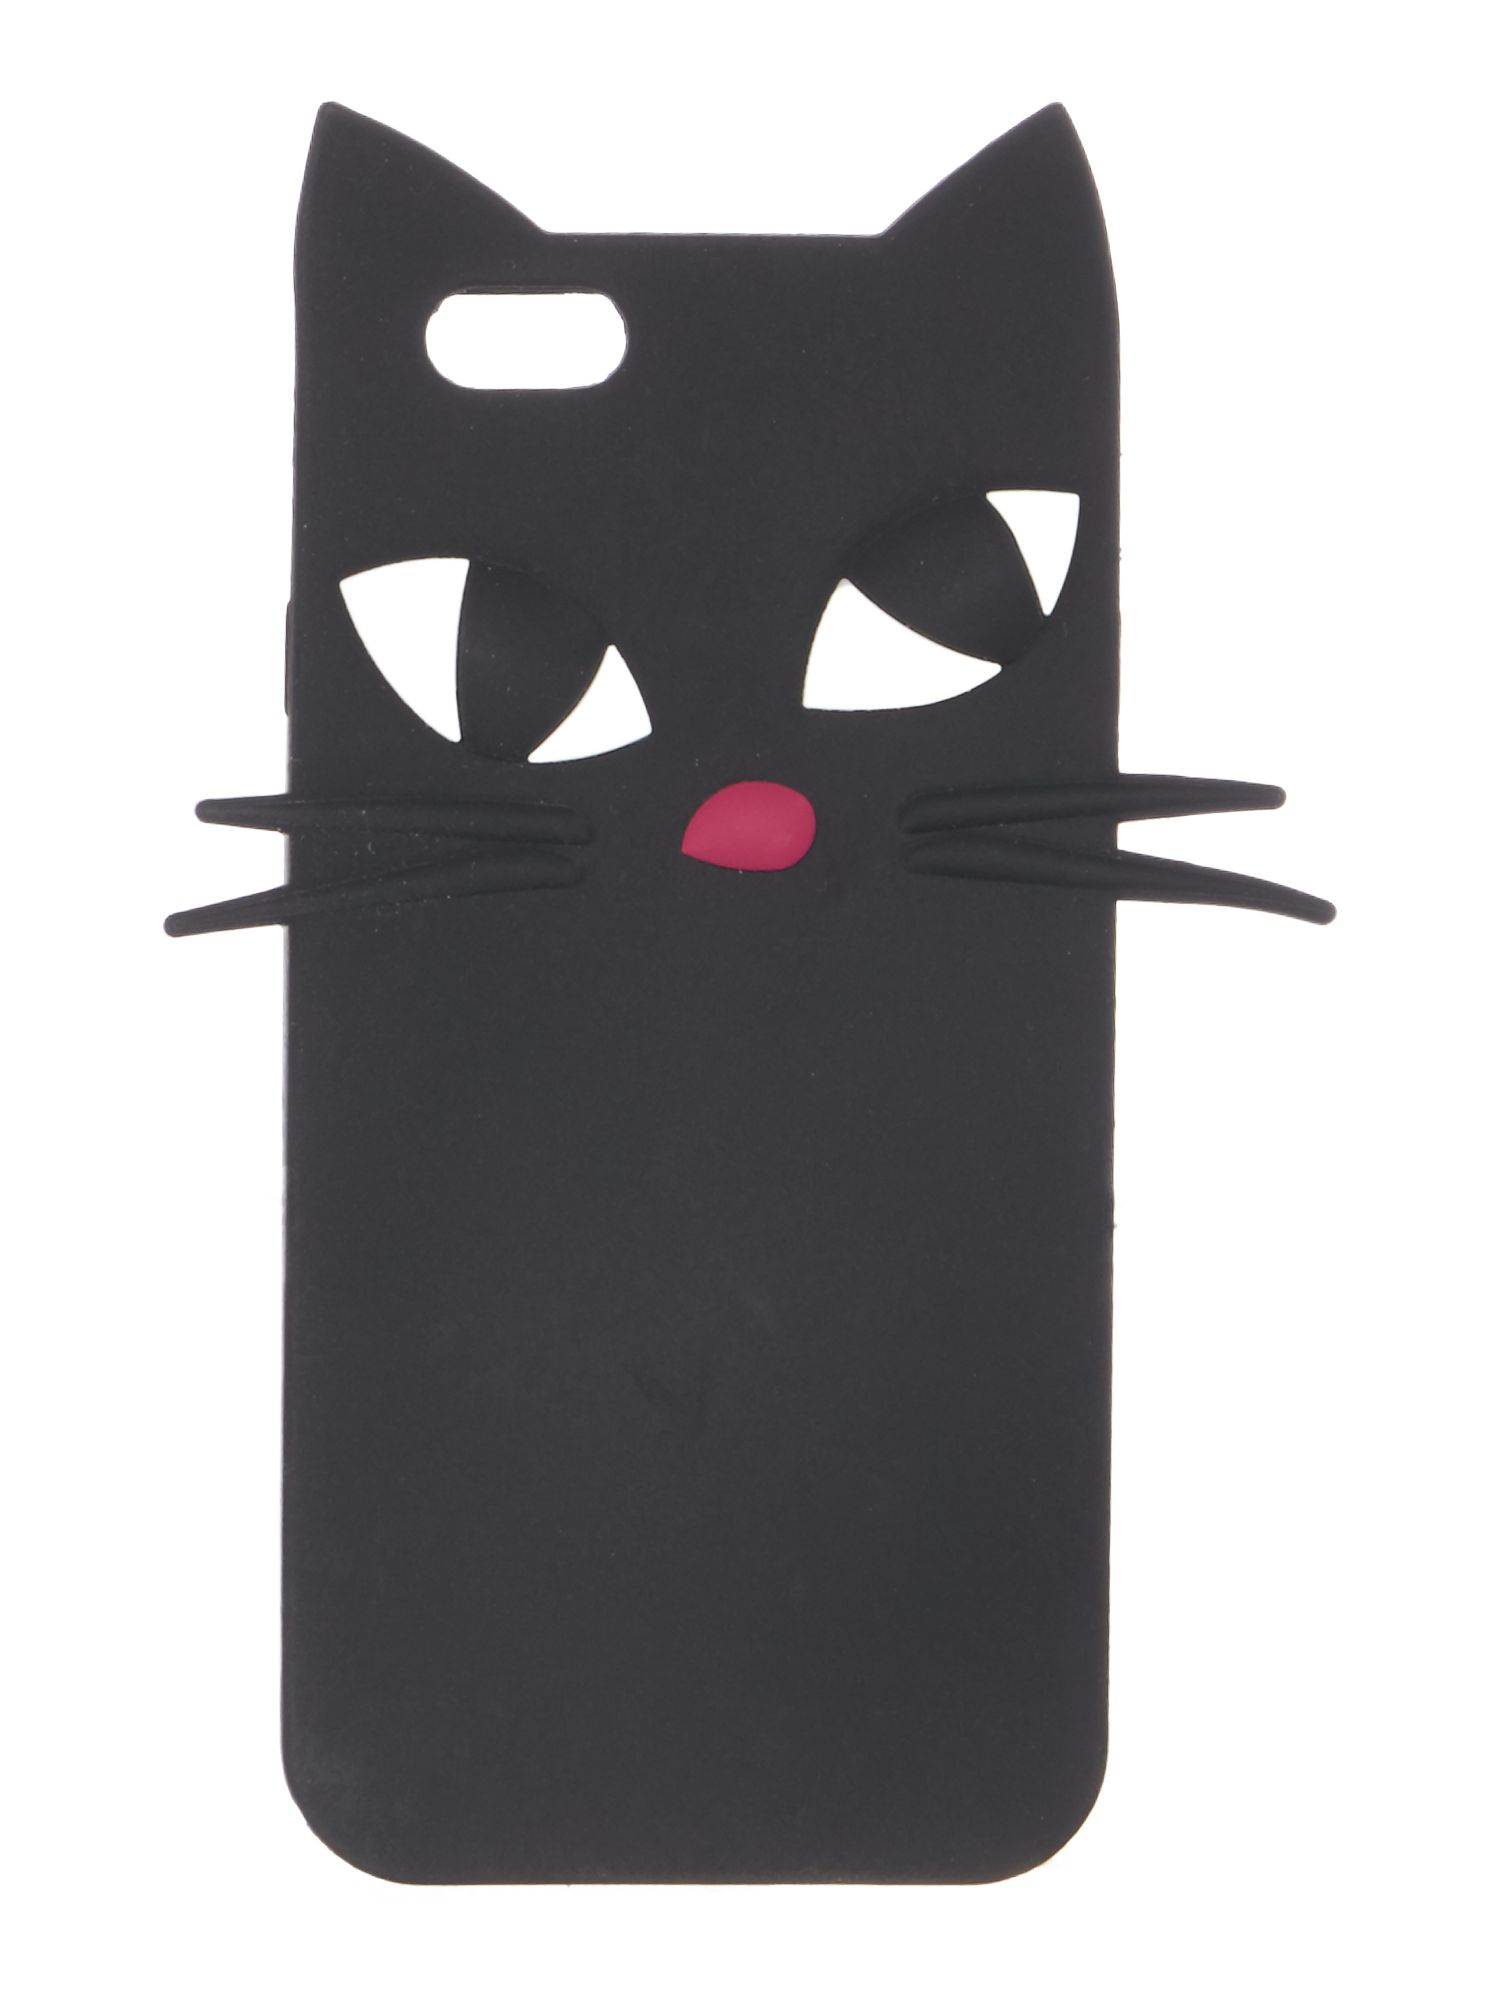 Lulu Guinness Blk kooky cat iphone 6 case, Black